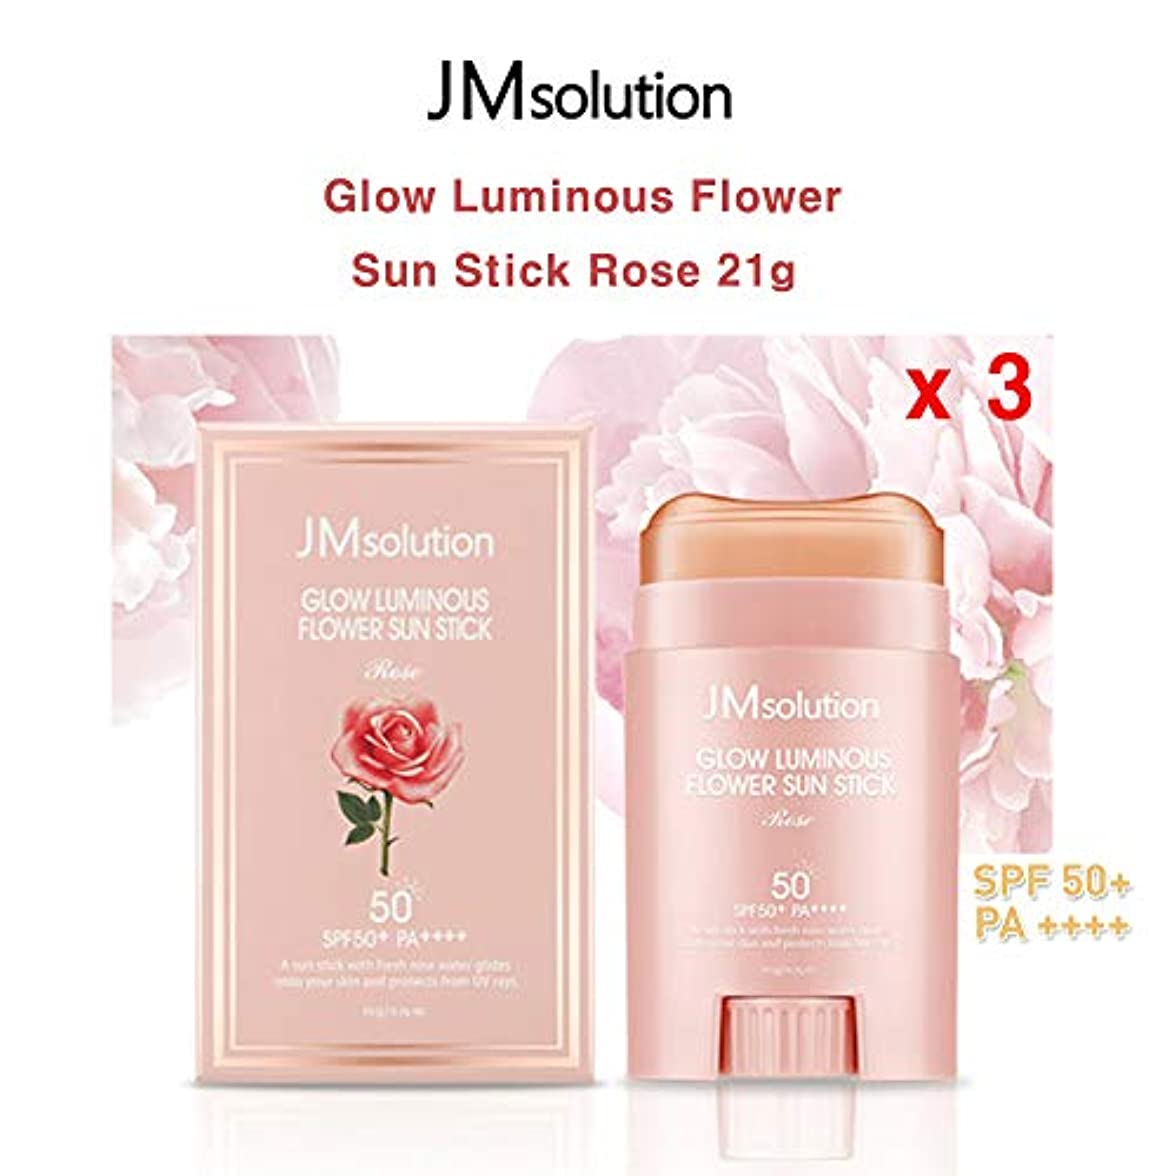 ユーザー我慢する高原JM Solution ★1+1+1★ Glow Luminous Flower Sun Stick Rose 21g (spf50 PA) 光る輝く花Sun Stick Rose